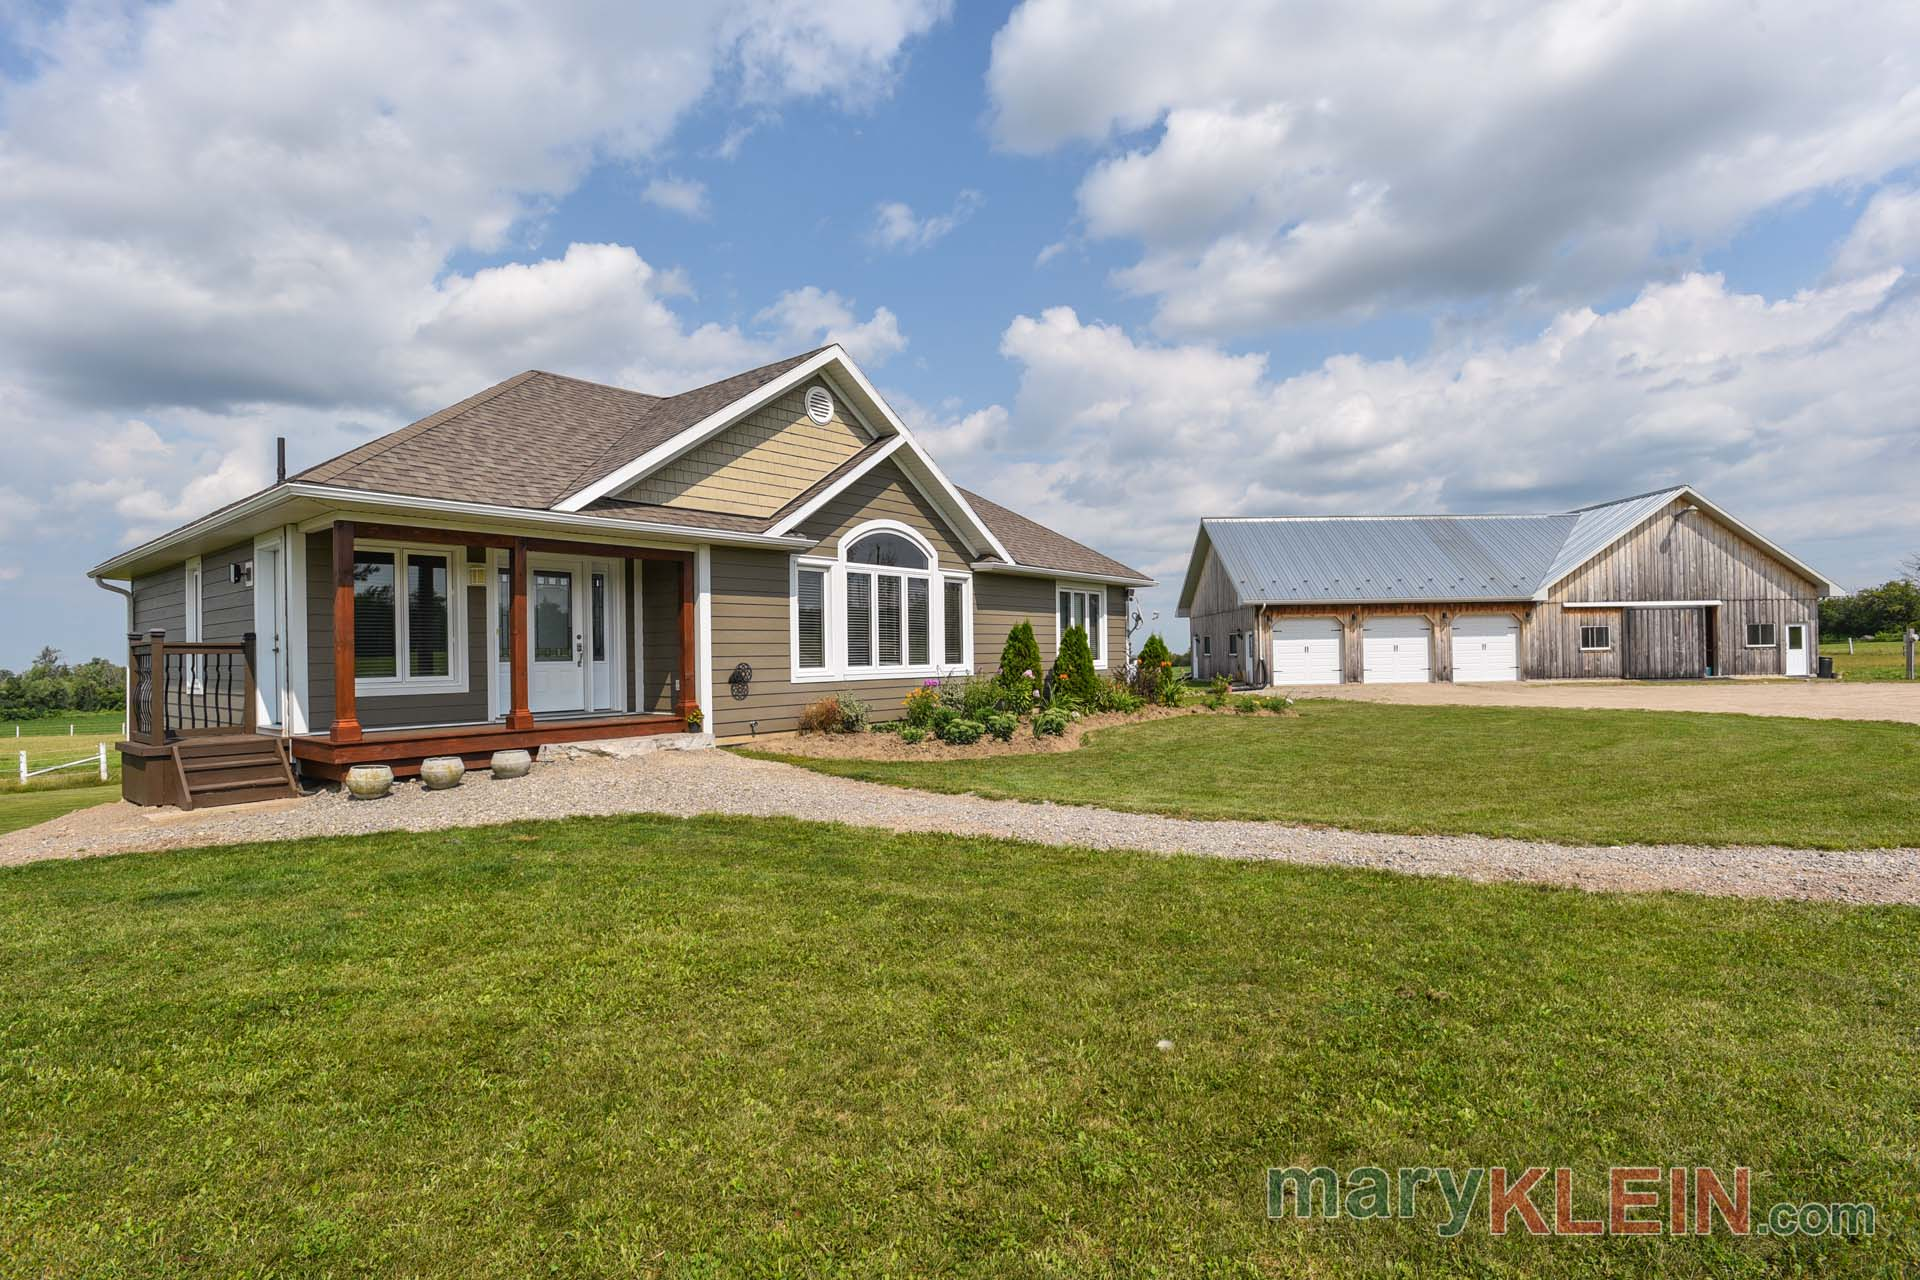 Newer Bungalow, 6 stall barn, workshop, 3 car garage